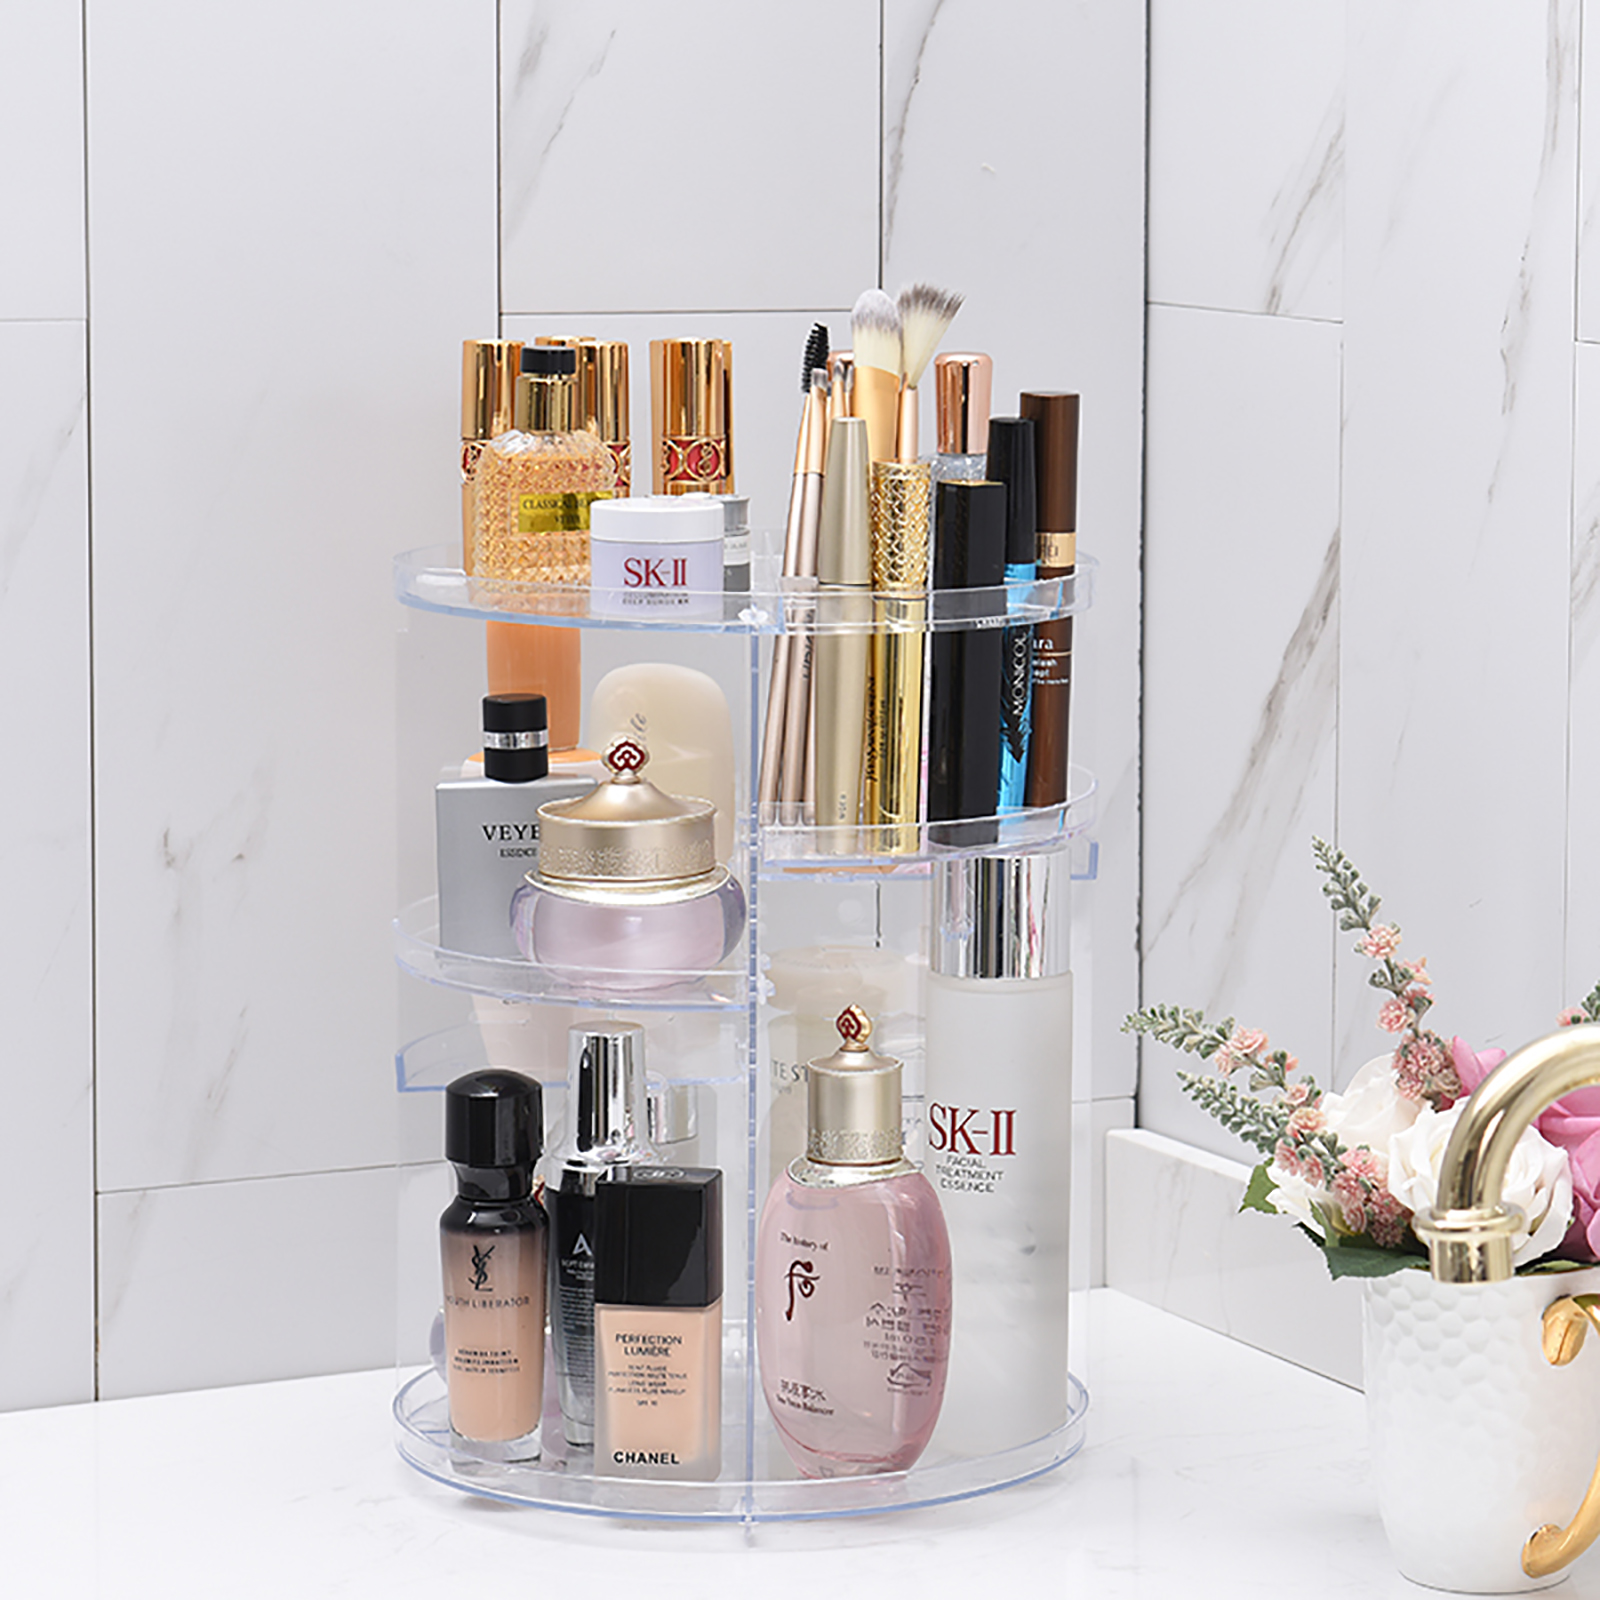 Details about Makeup Cosmetic Rack Holder 360 Degree Rotating Organizer Storage Box Case Clear